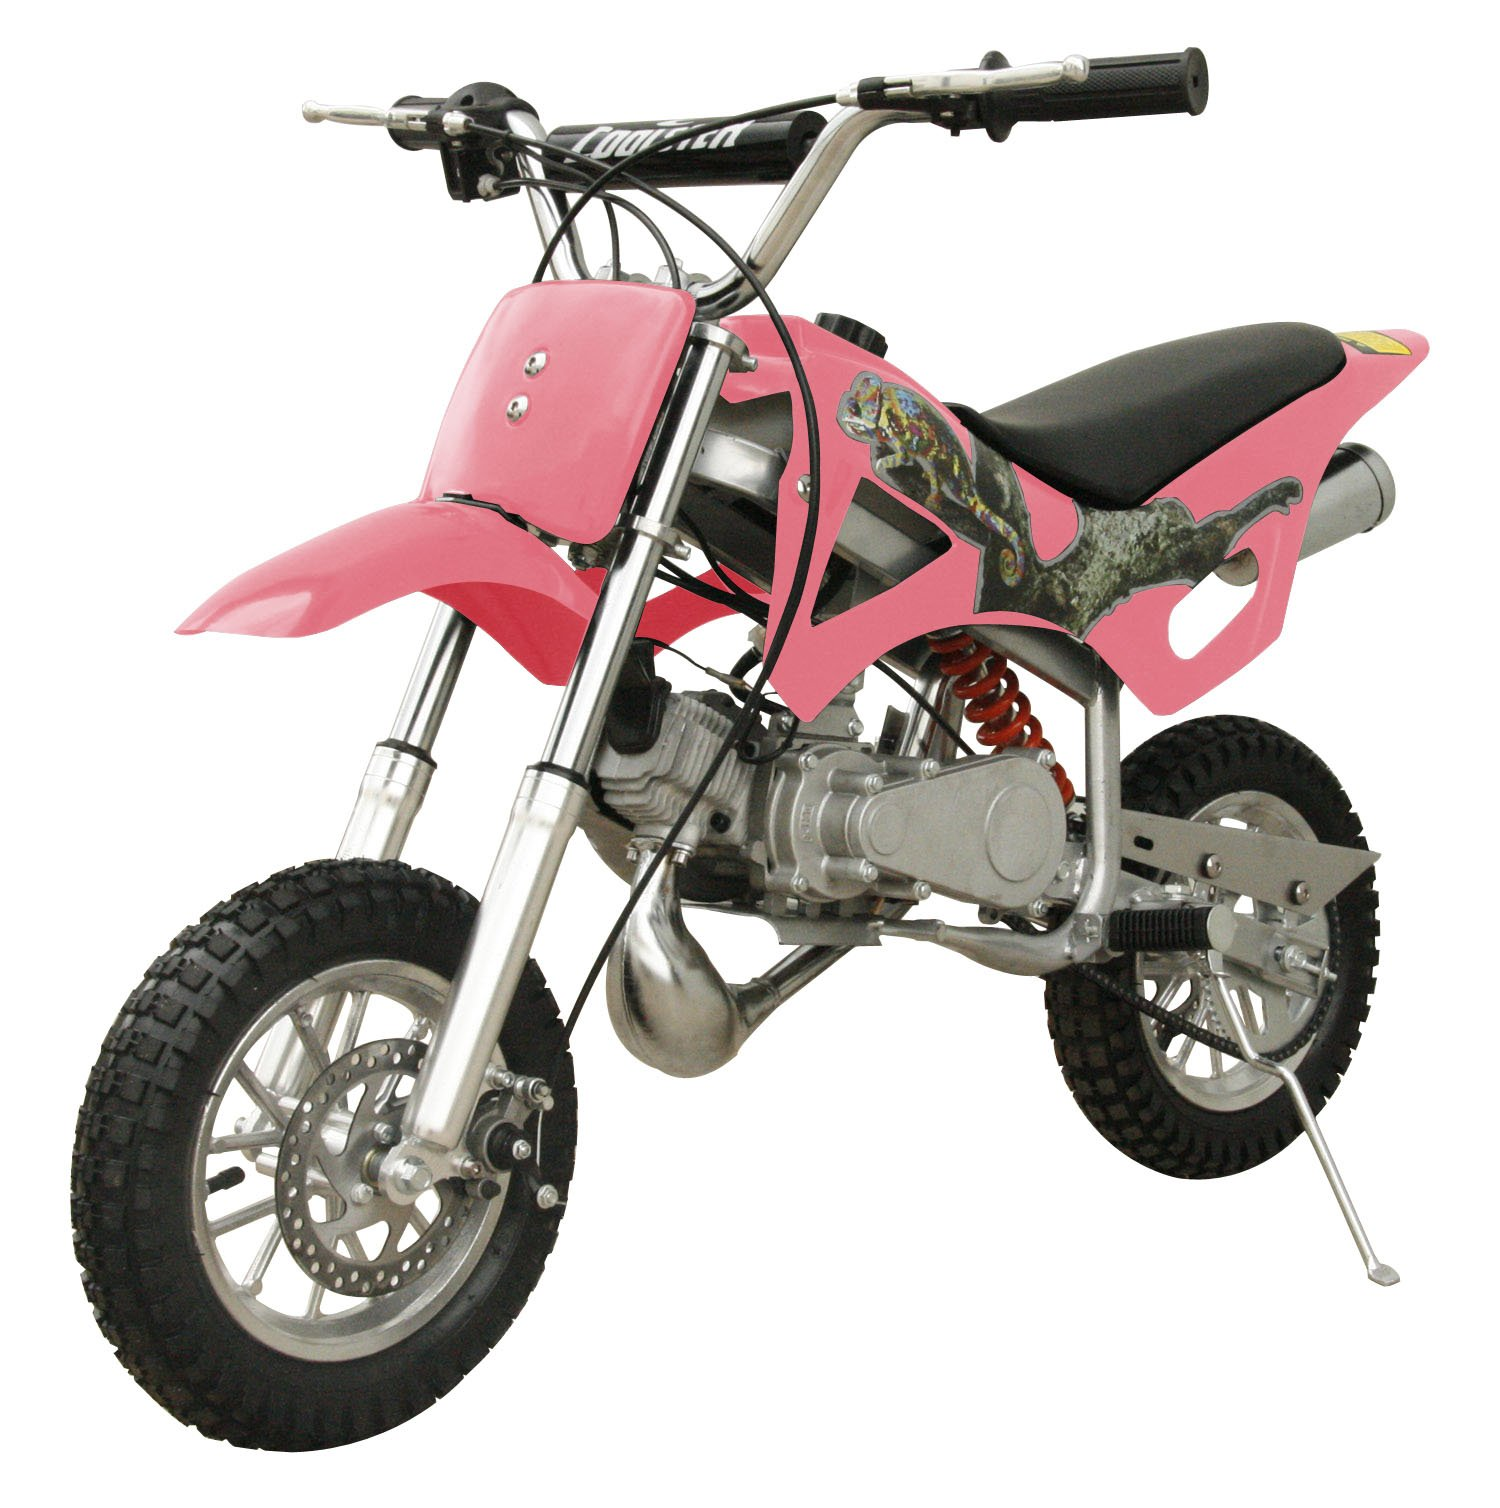 49cc 50cc 2-Stroke Gas Motorized Mini Dirt Pit Bike (Pink) by Flying Horse